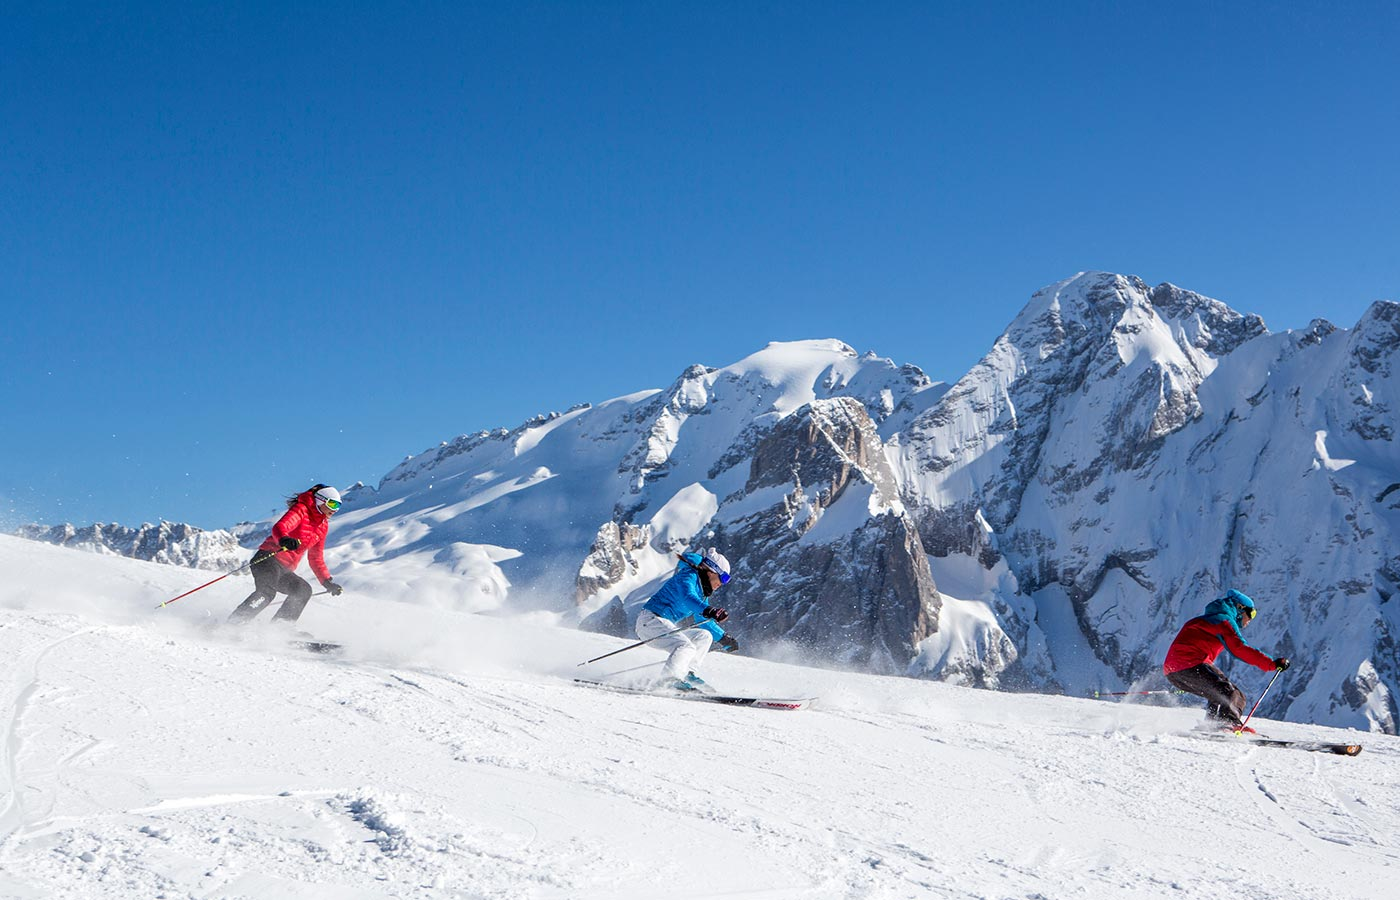 Three skiers start the descent from the mountain